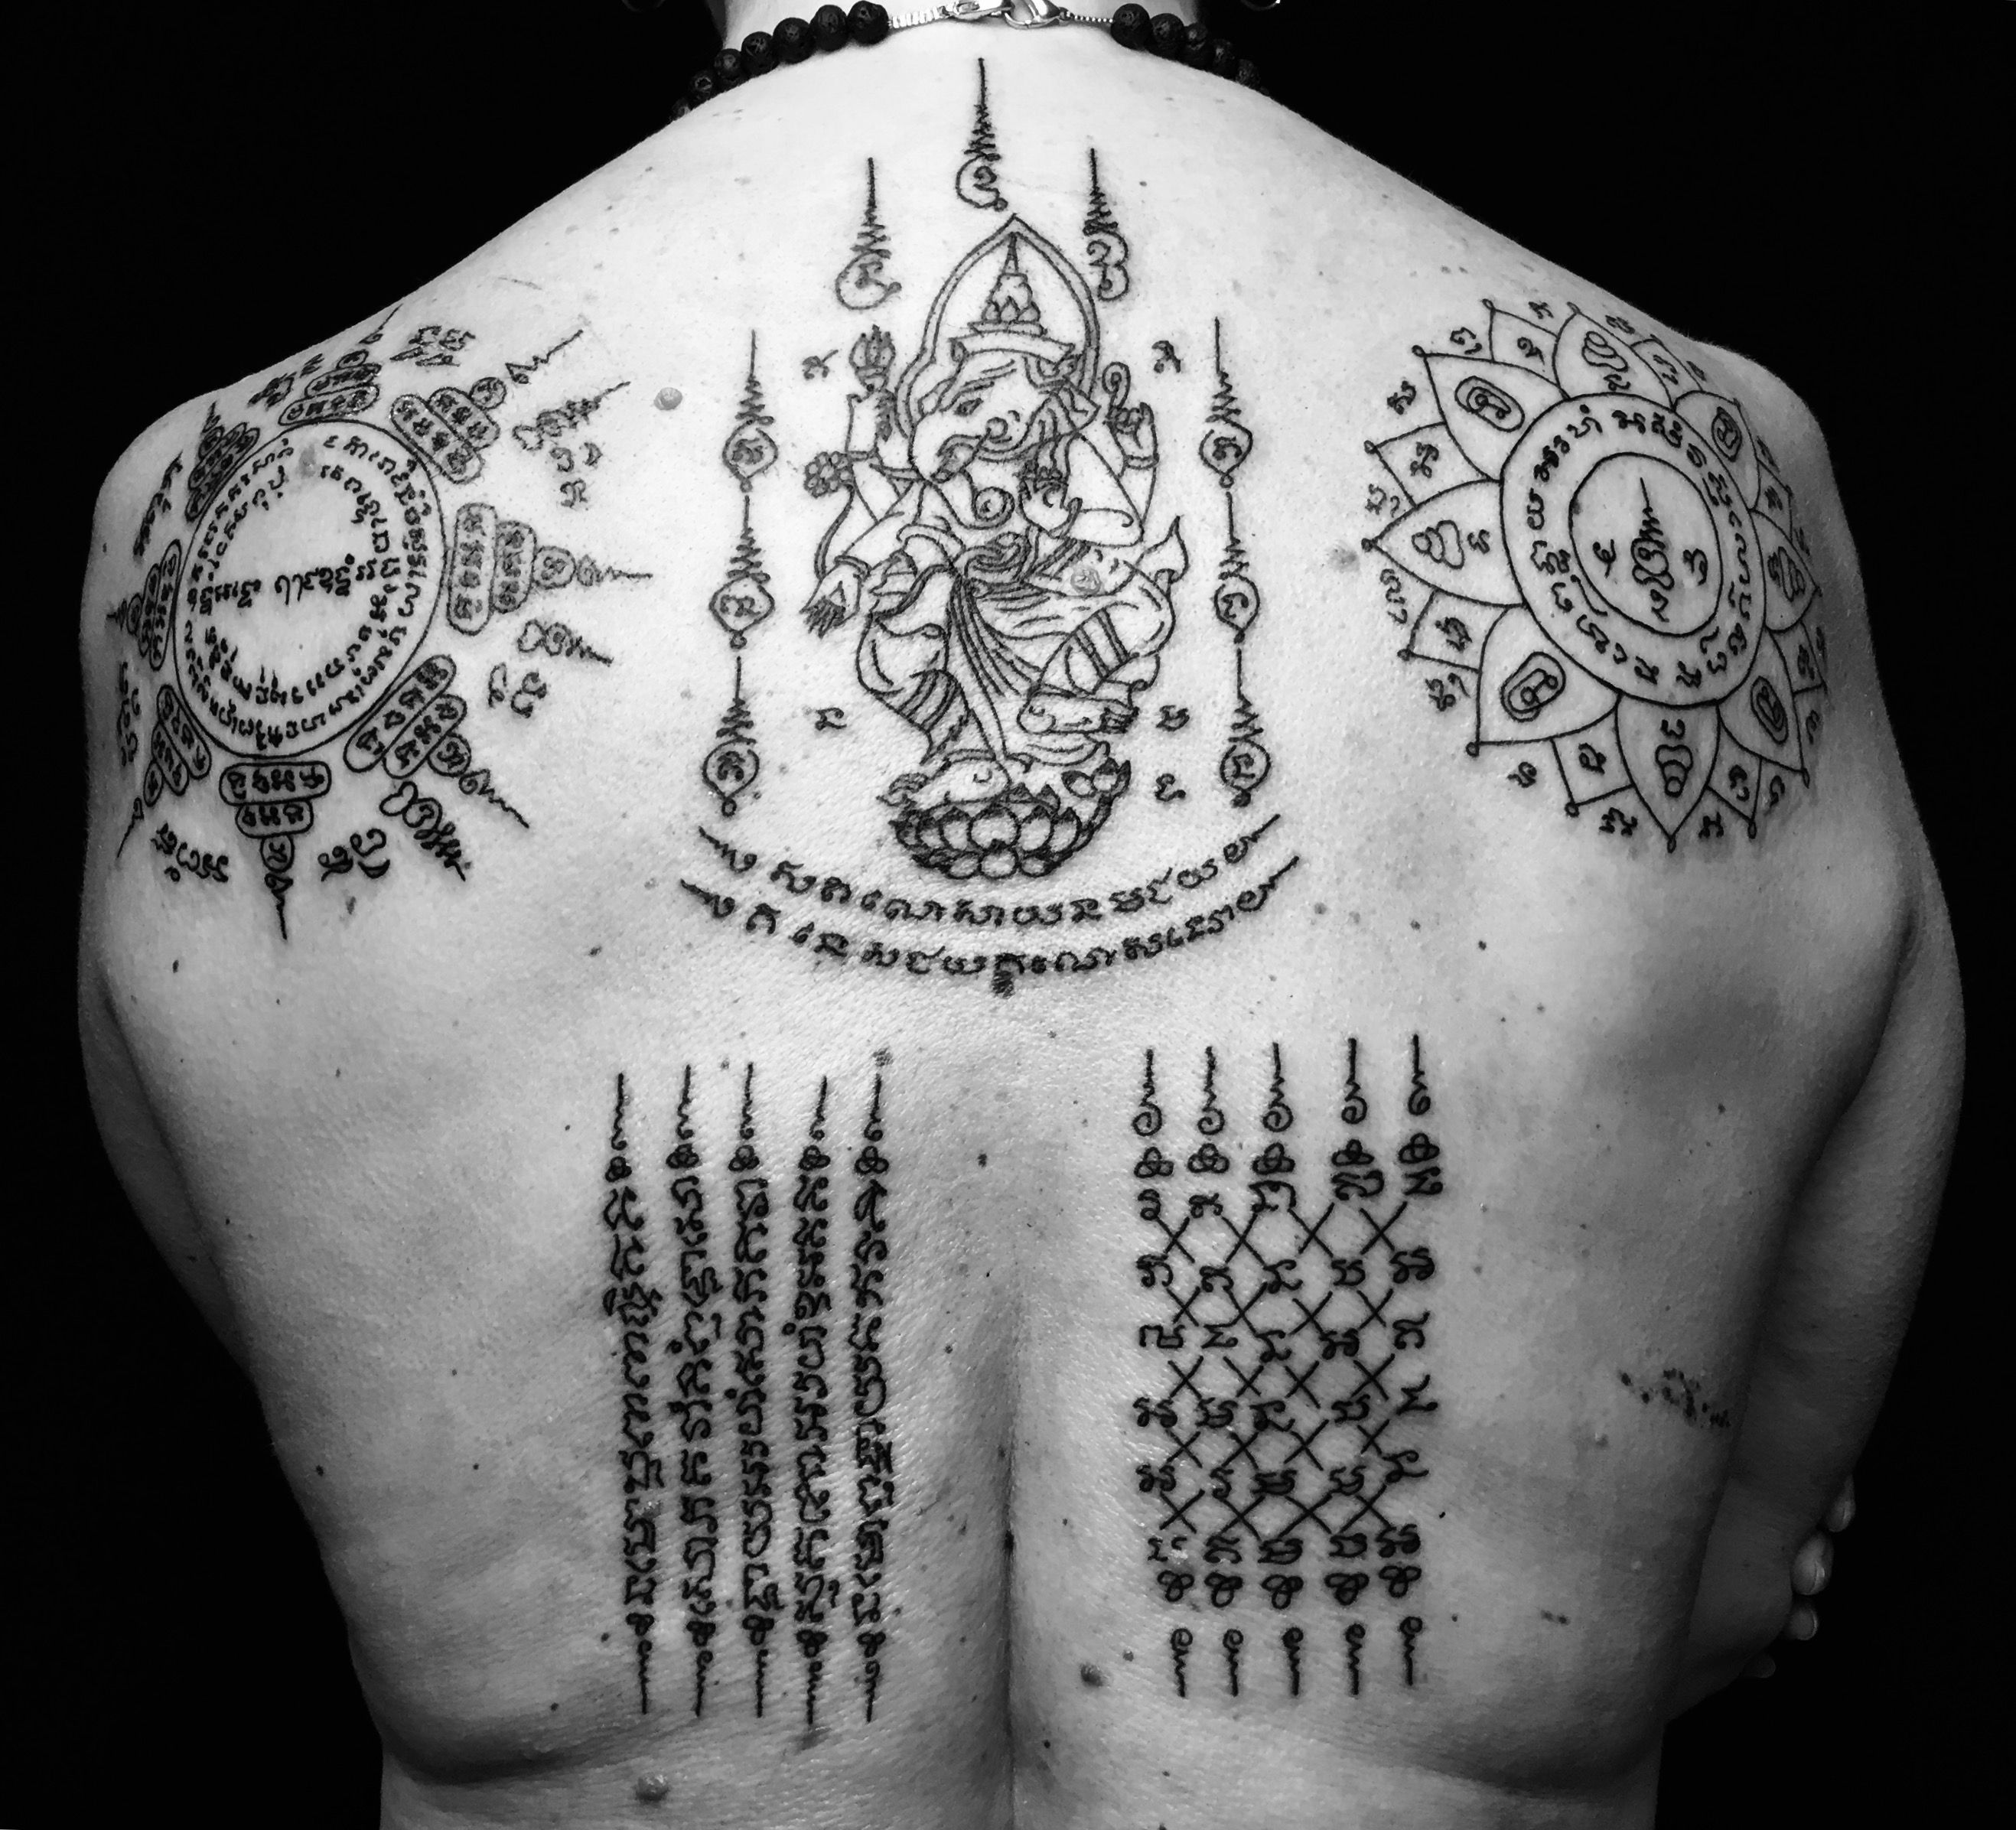 Many tattoos in the form of a Lotus, and the elephant Ganesh and protective Sak Yant